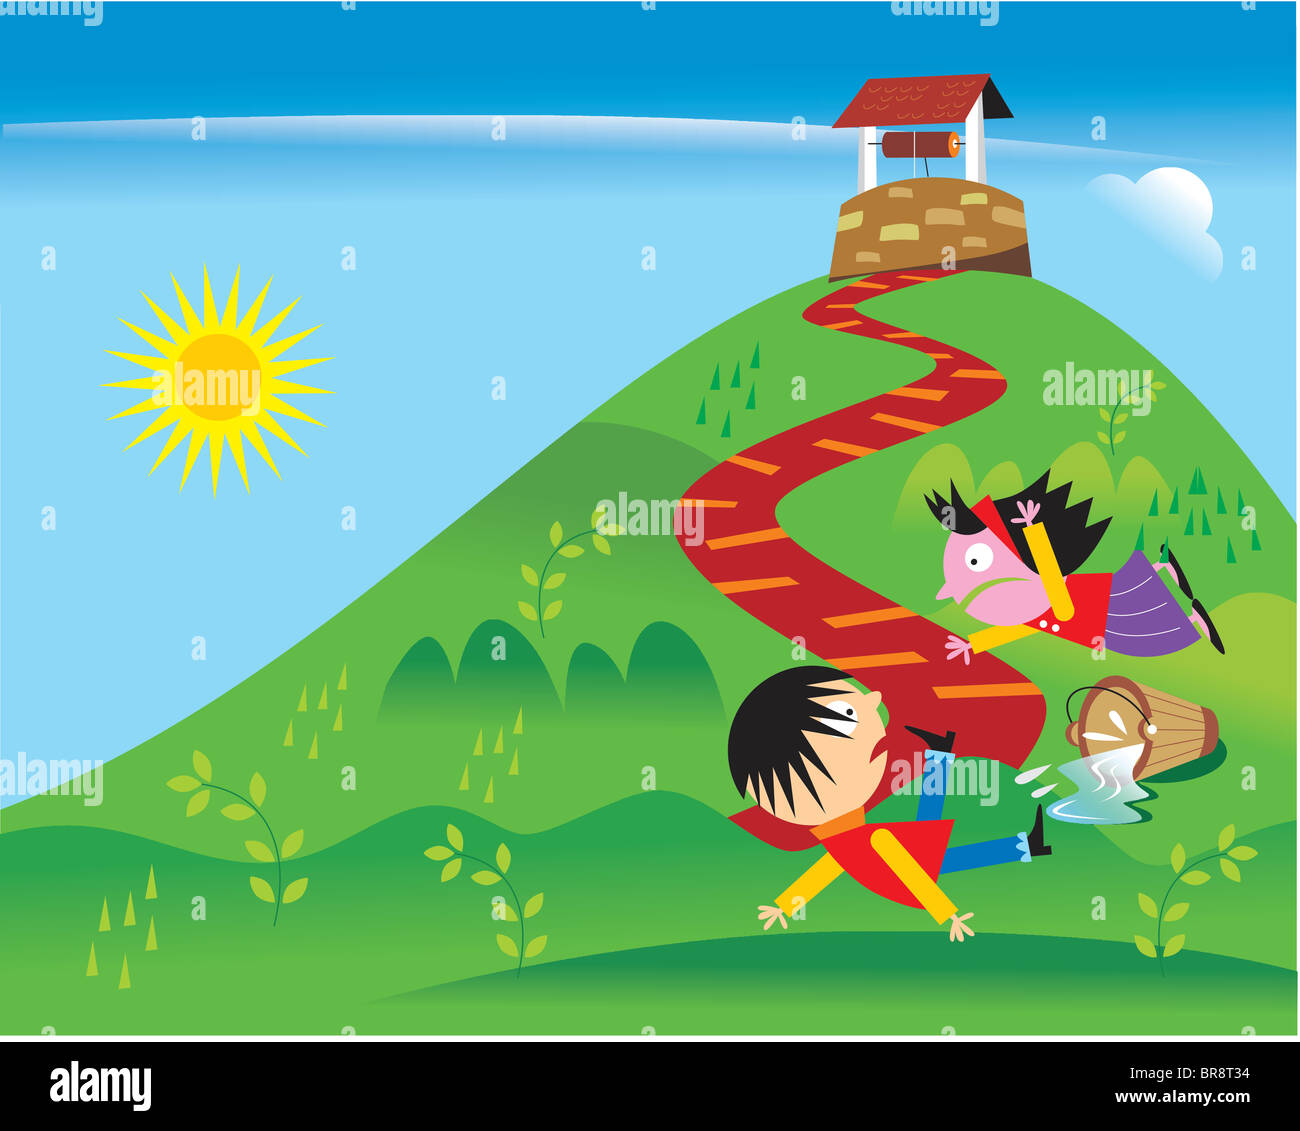 Jack Jill Nursery Rhyme Stock Photos & Jack Jill Nursery Rhyme ...